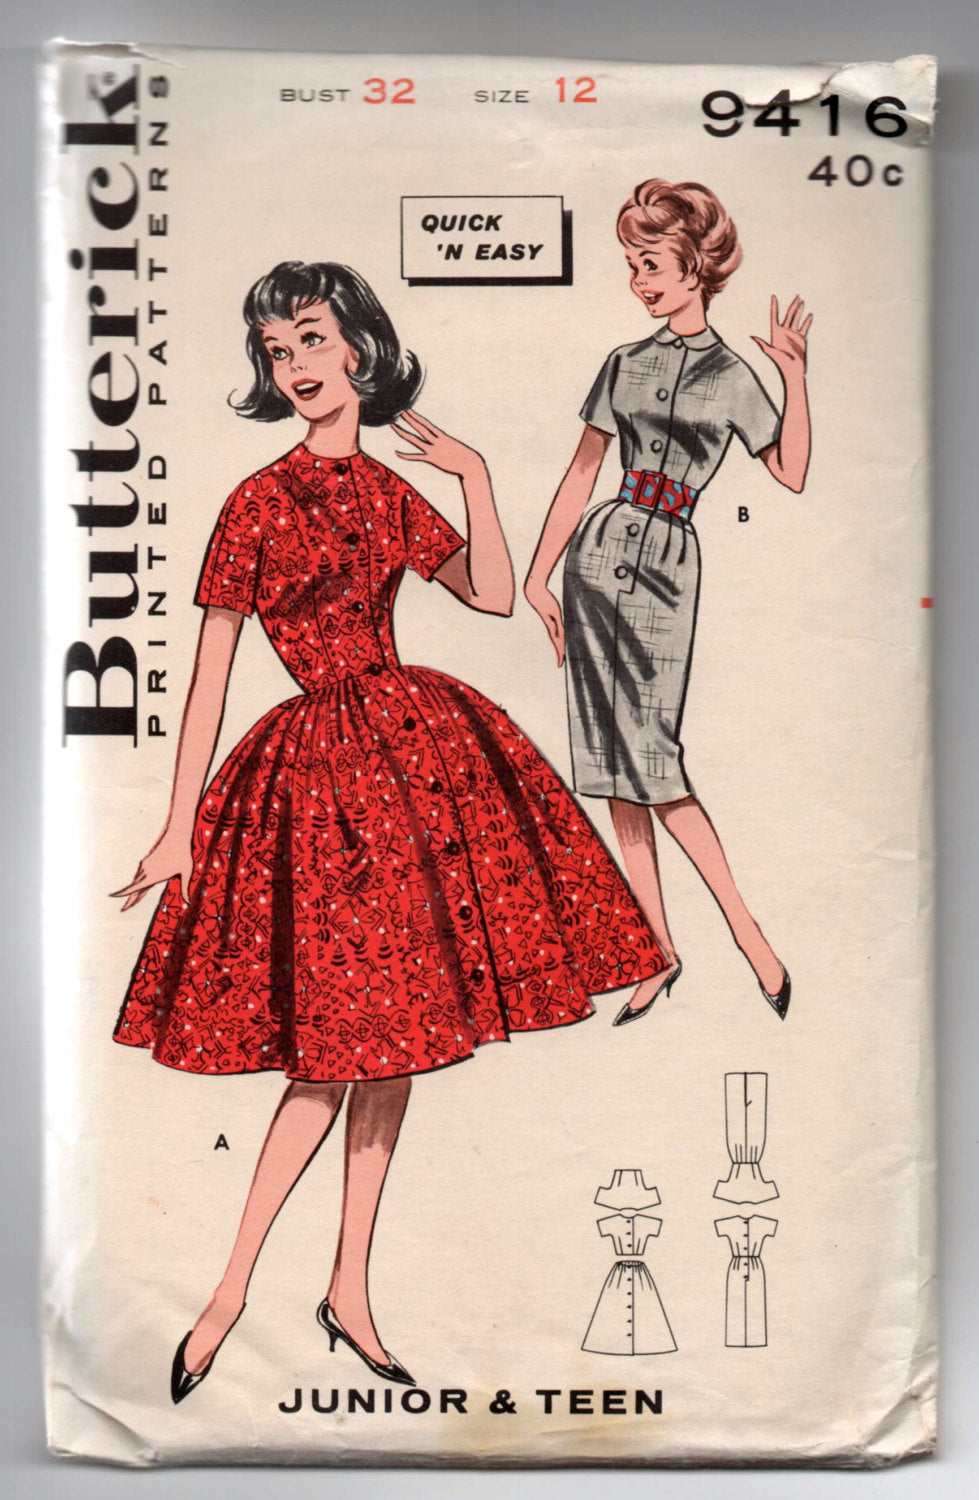 1960's Butterick One-Piece Dress with Full or Slim Skirt Pattern - Bust 32